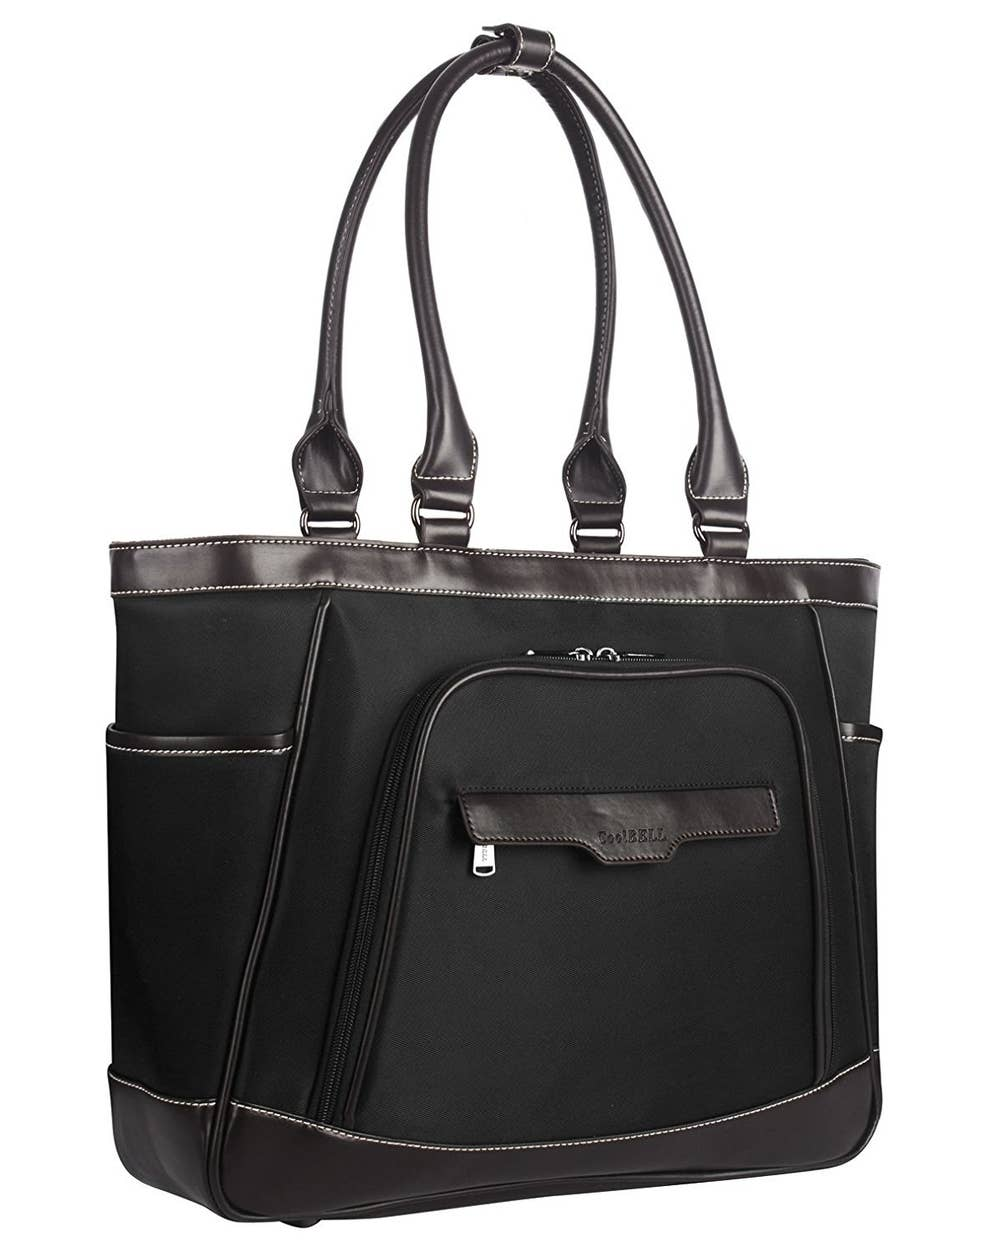 4b0d9650fa 21 Useful Bags That Are Organized So You Don t Have To Be